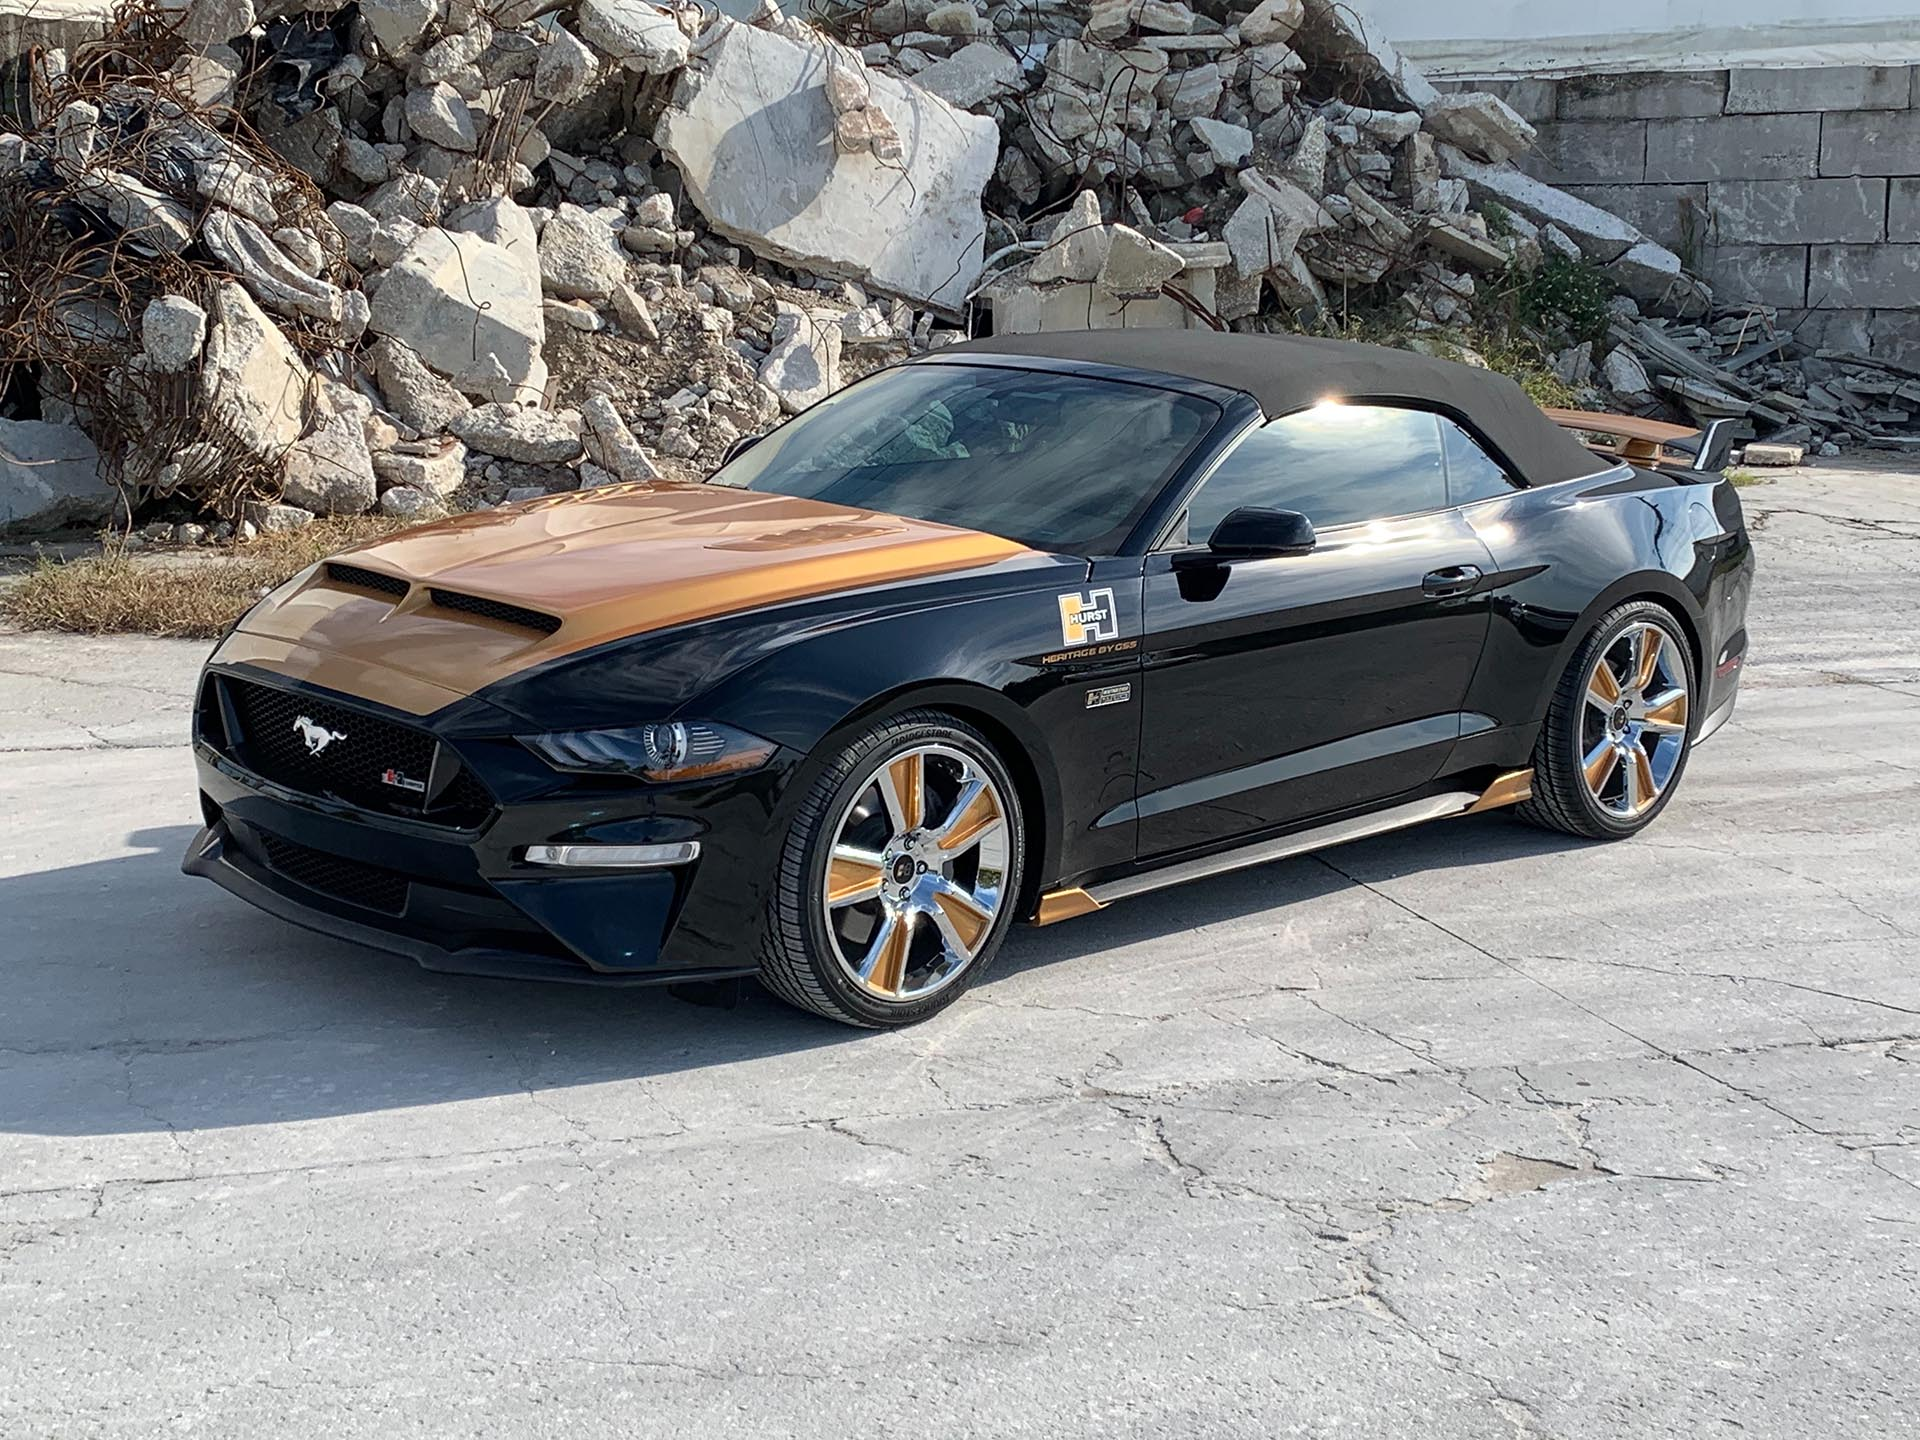 2019 Ford Mustang GT Convertible Hurst Prototype by GSS Supercars